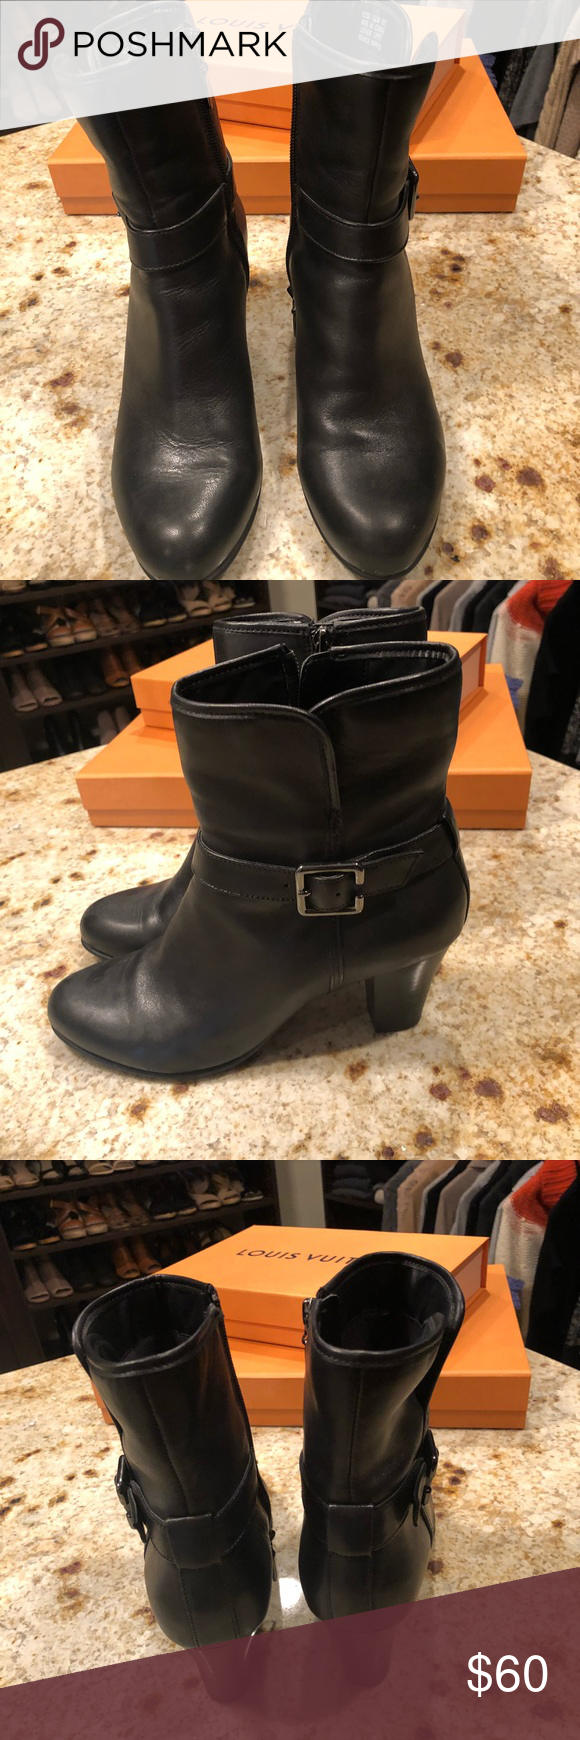 6e2e8471c5a Clark s black boot Clark s black boot. Excellent condition (worn a few  times only) Clarks Shoes Ankle Boots   Booties